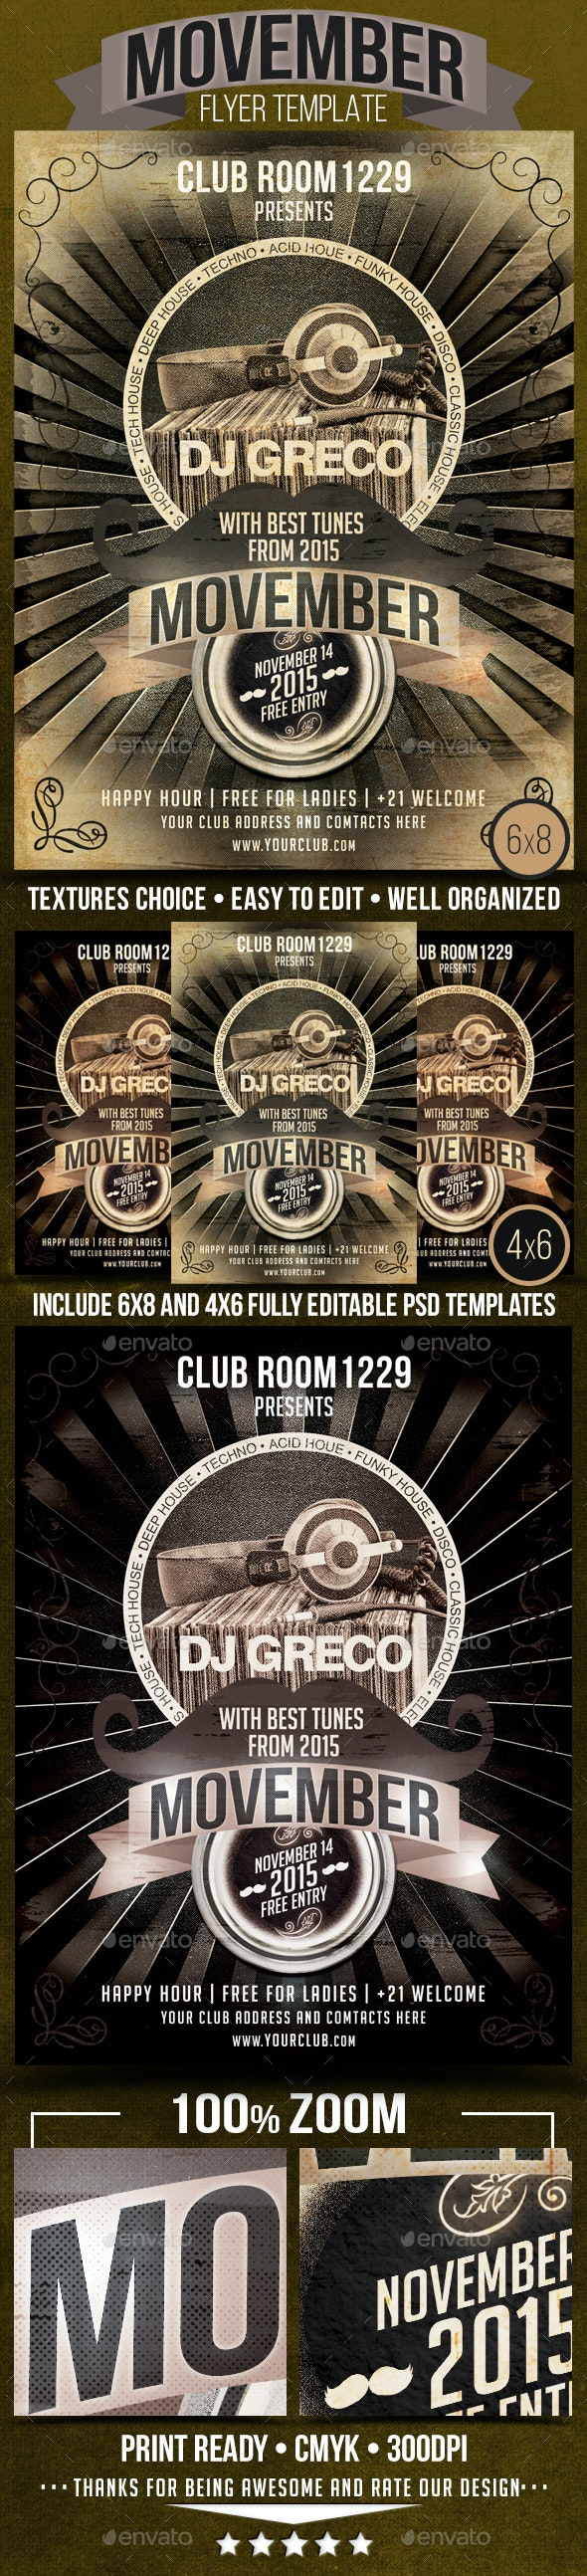 Movember Guest DJ Flyer Template - Clubs & Parties Events